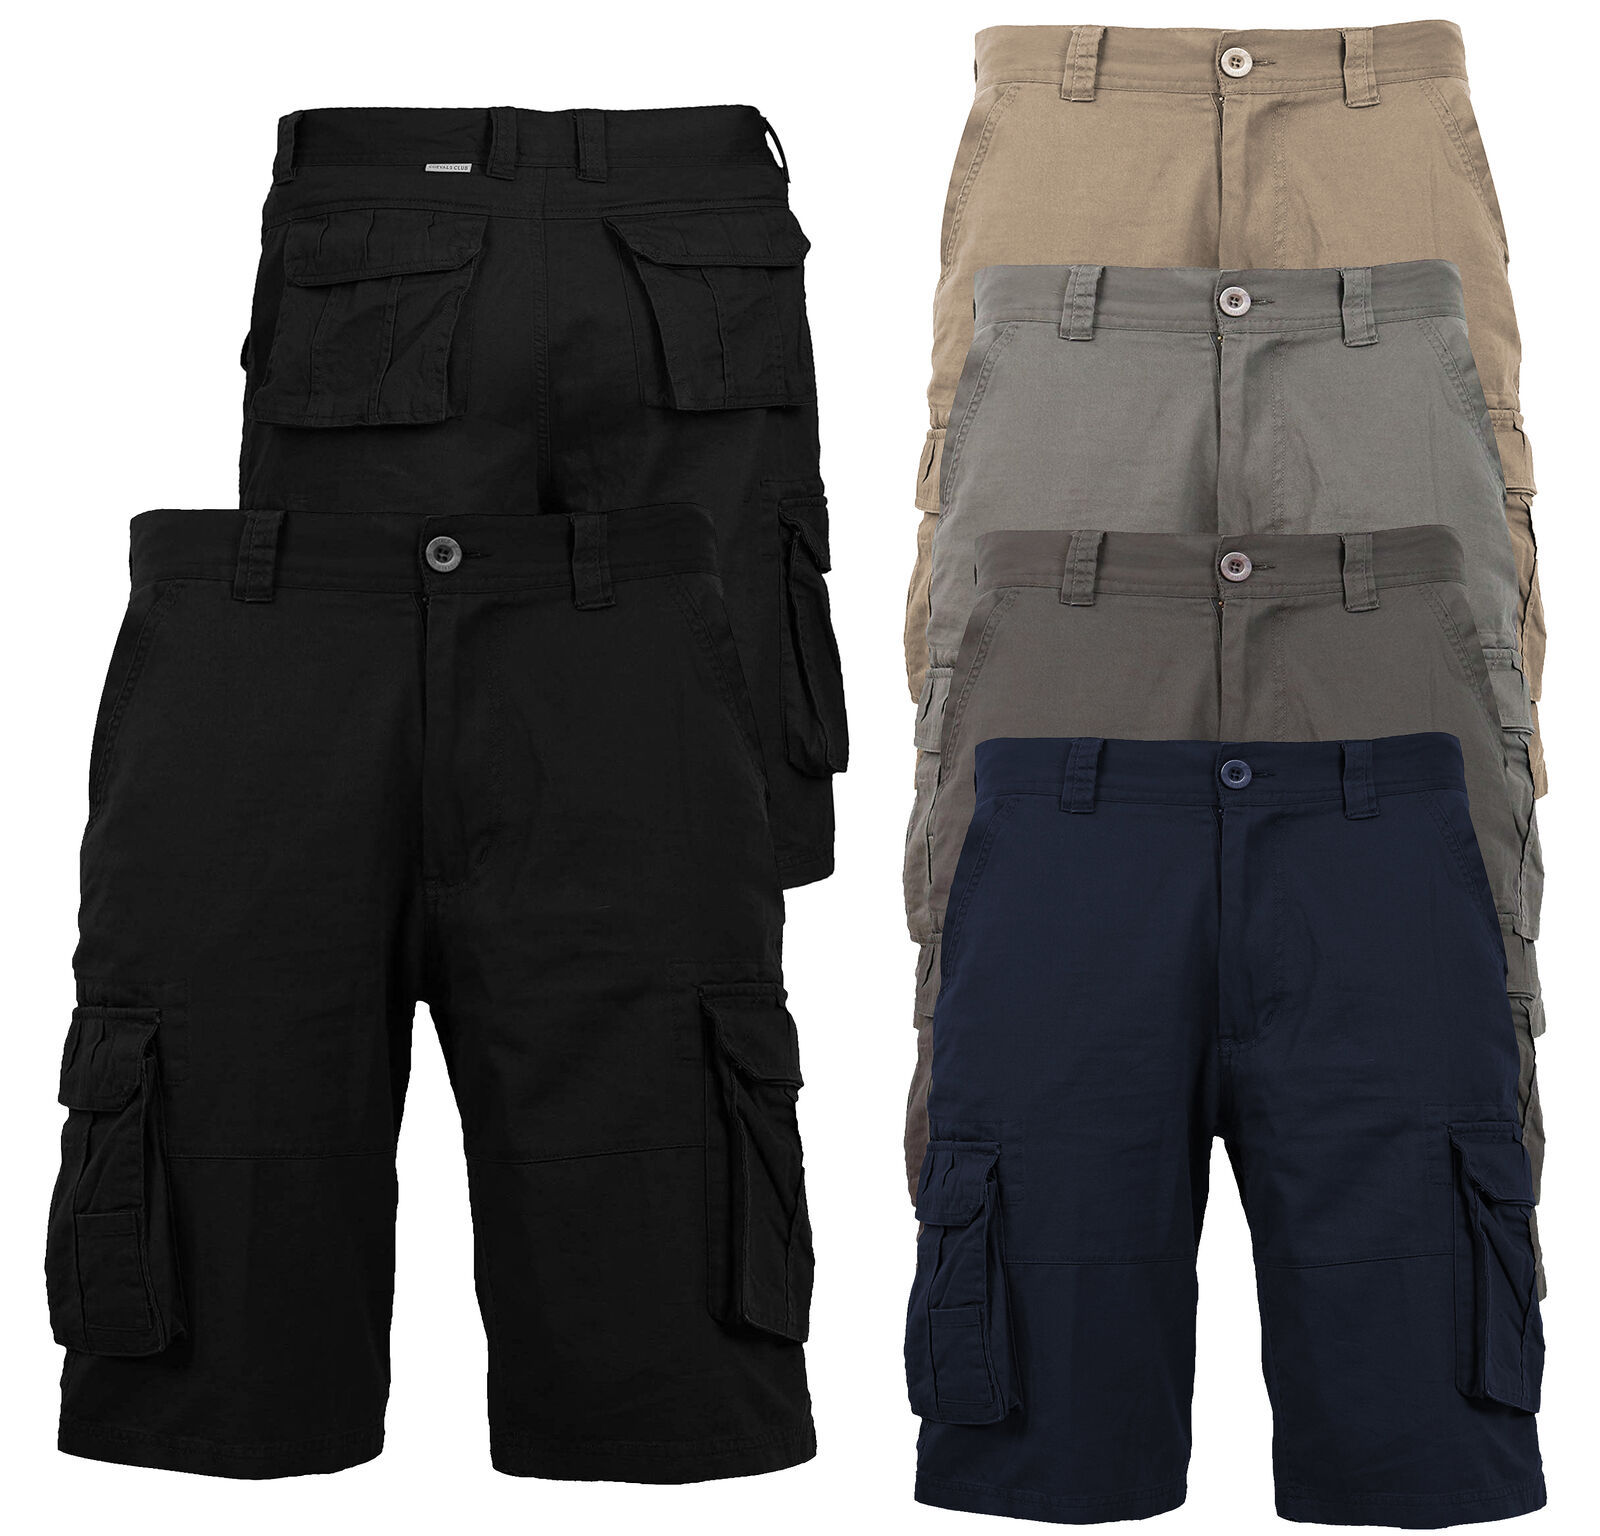 Men's Cotton Multi Utility Pockets Relaxed Fit Casual Outdoor Army Cargo Shorts